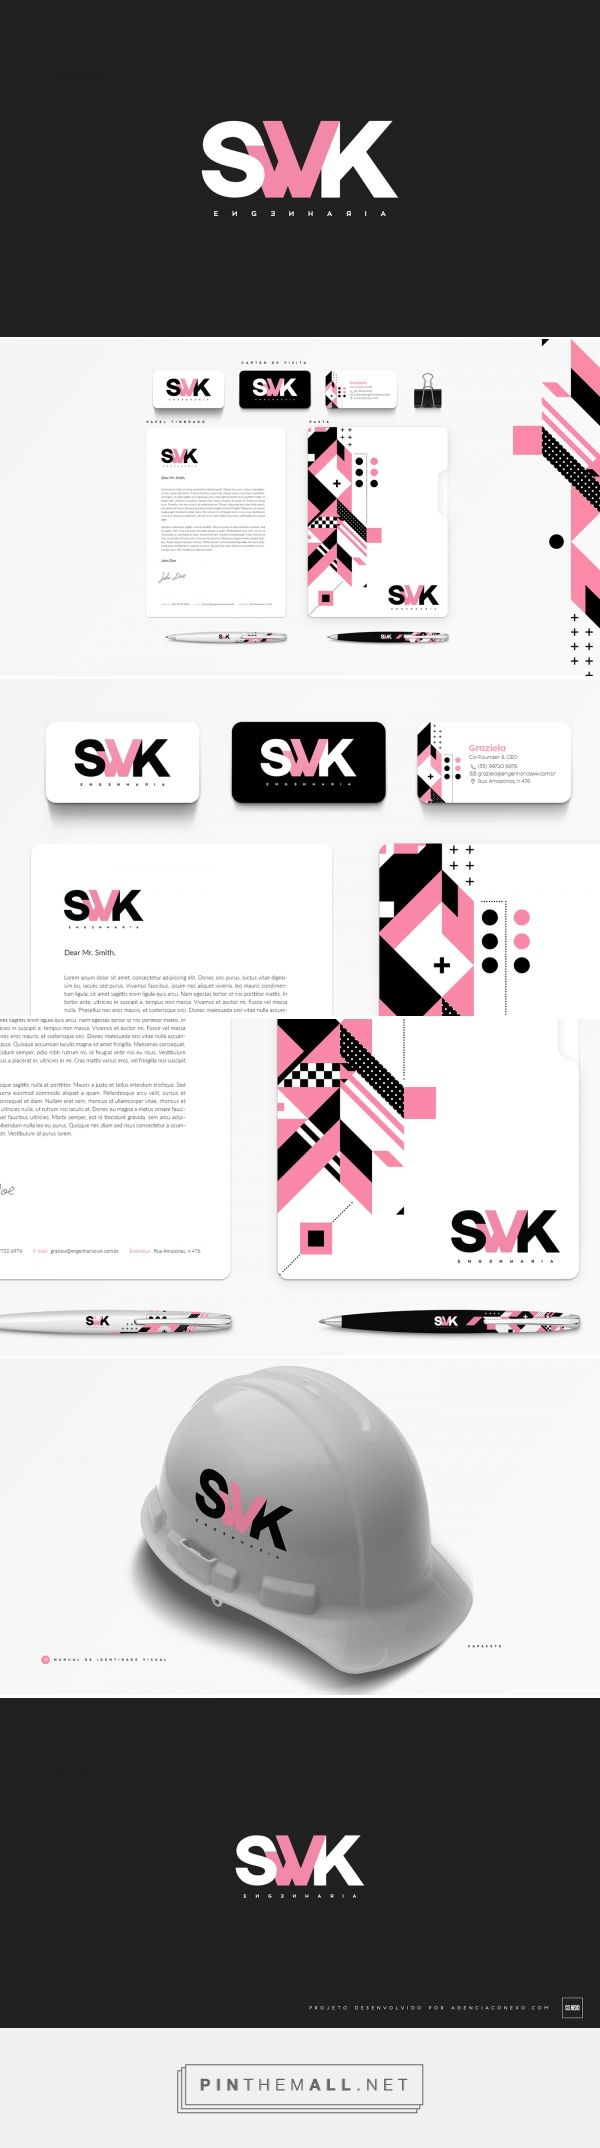 SWK Engineering Brand Identity by Emerson Gabriel  | Fivestar Branding Agency – Design and Branding Agency & Curated Inspiration Gallery